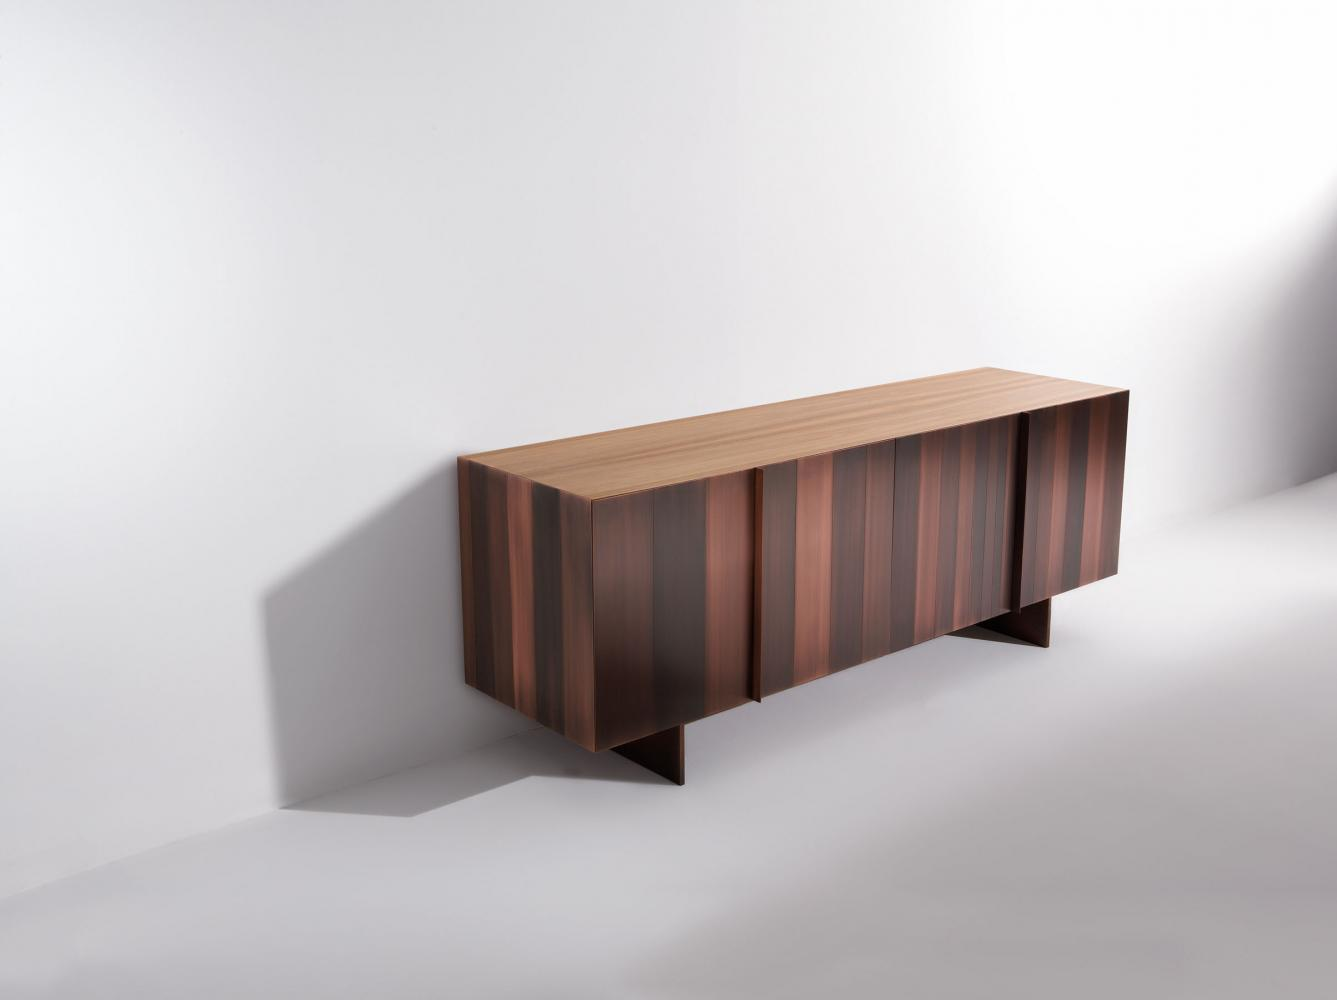 ST 12 Luxury custom size low sideboard clad in copper